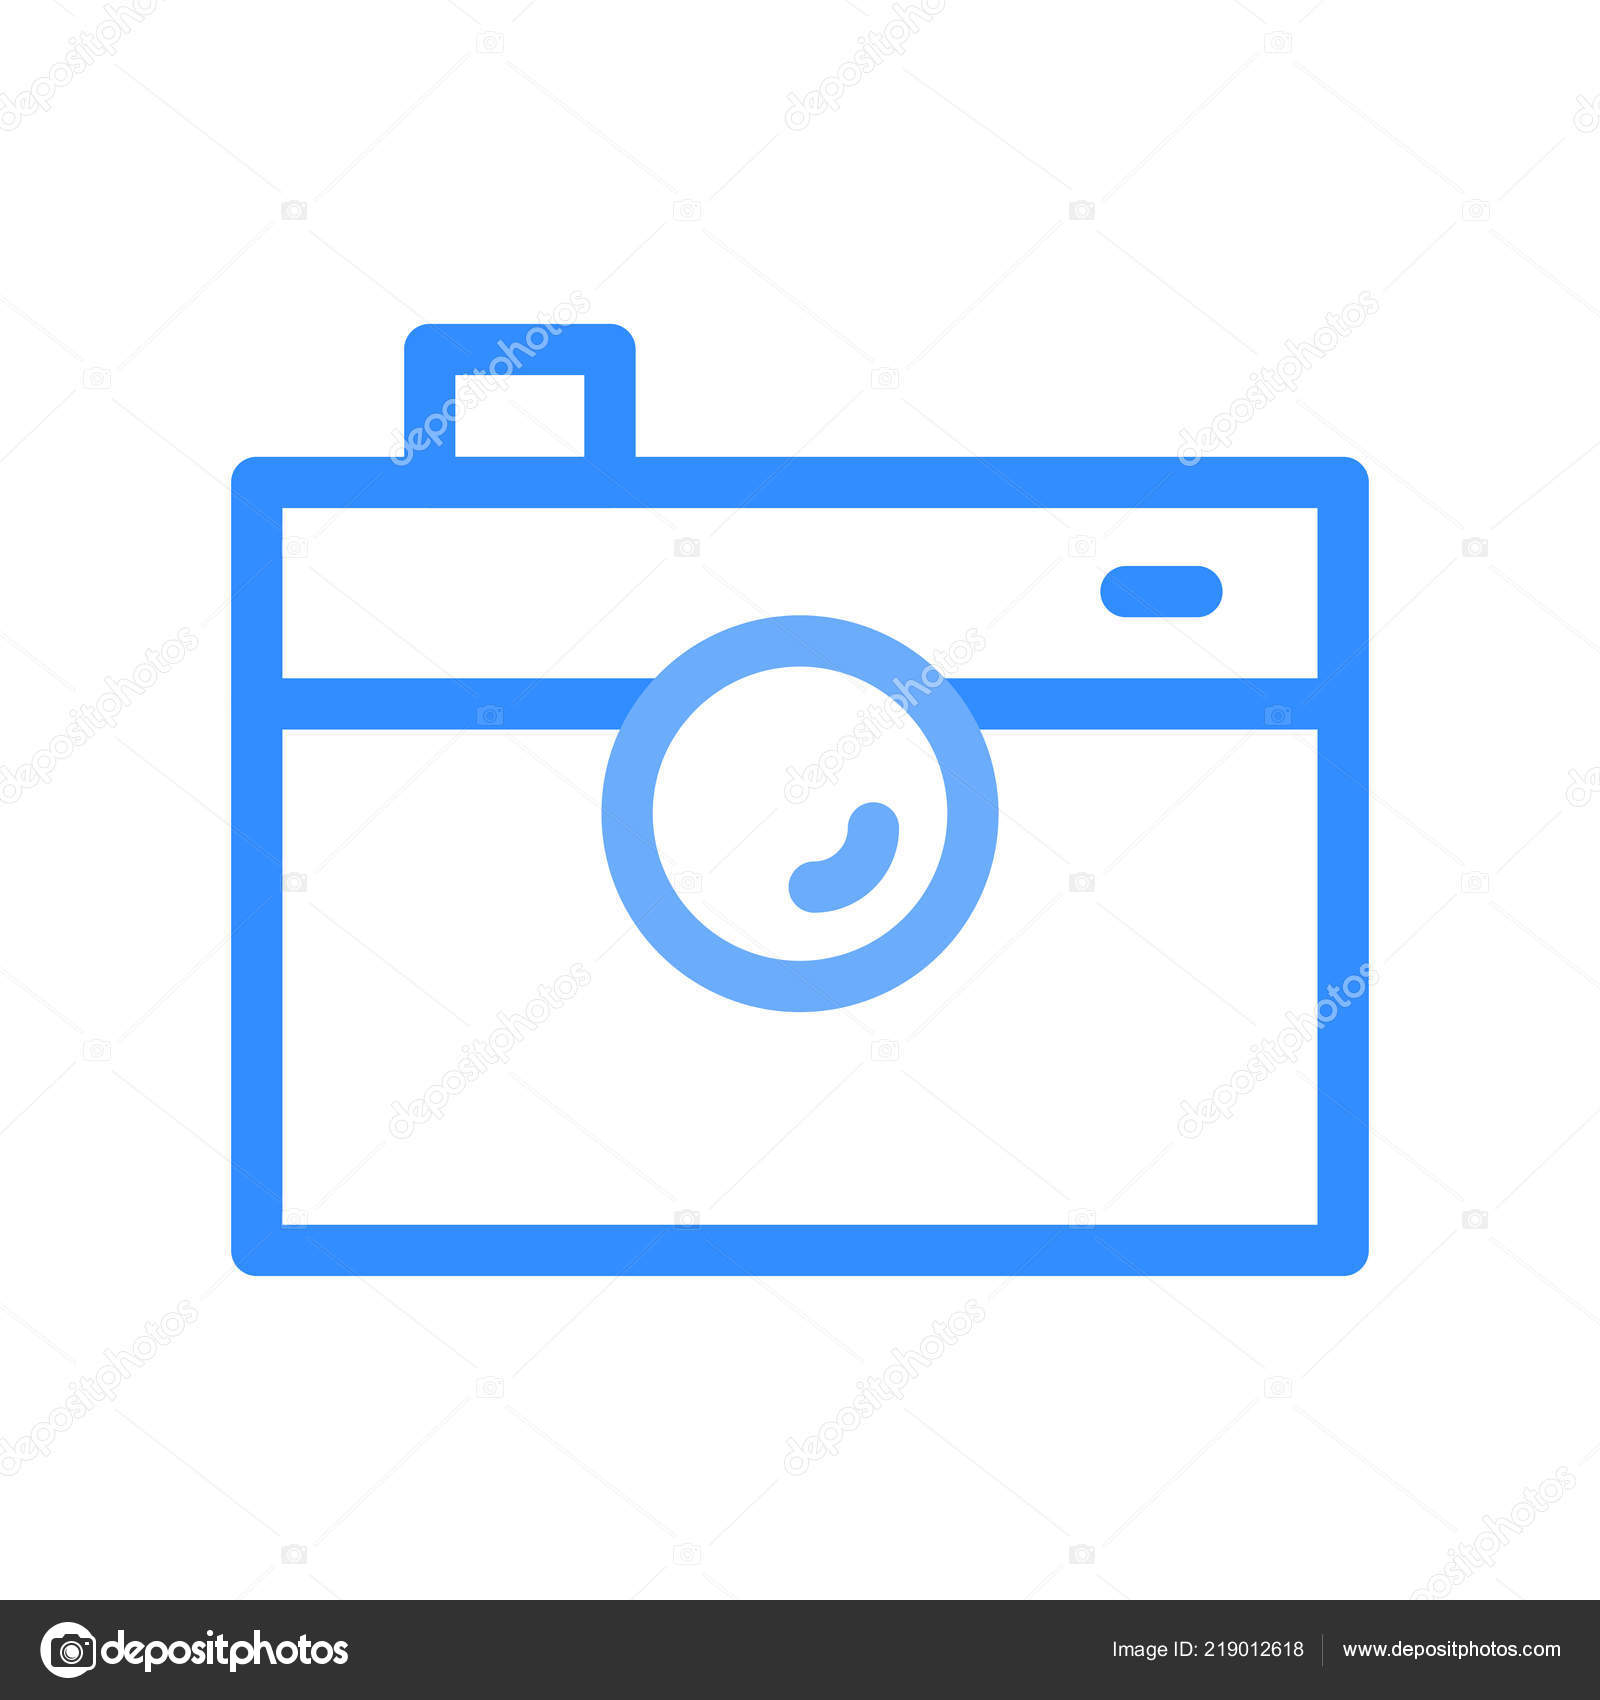 Möbel Modern Design Camera Icon Web Mobile Modern Minimalistic Flat Design Stock